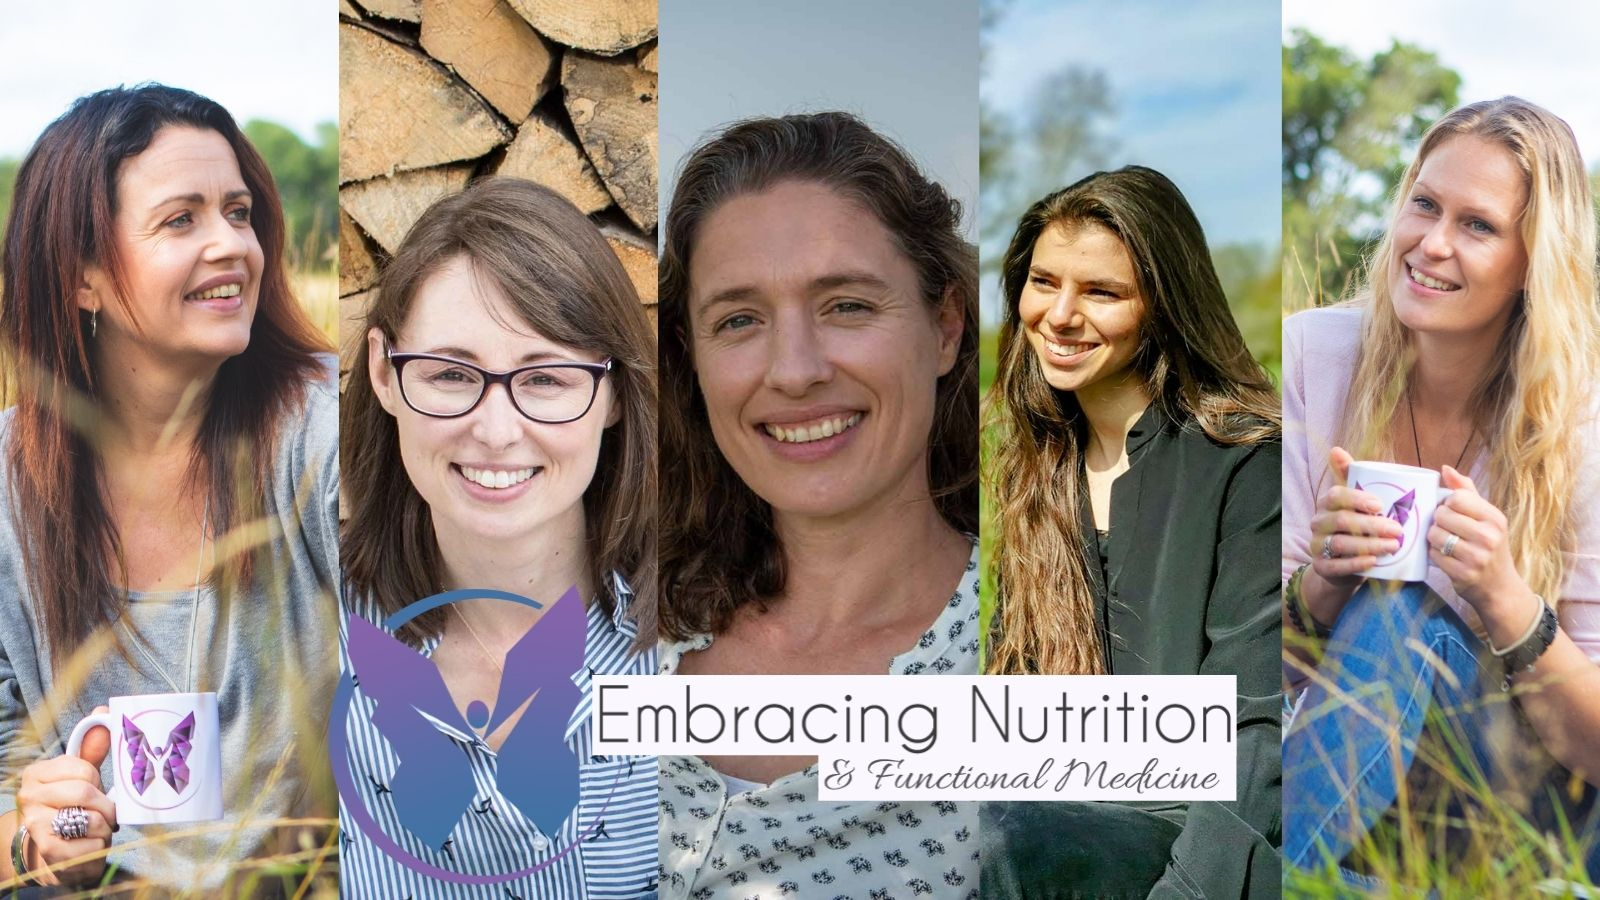 Embracing Nutrition Functional Medicine Practitioners Health Guidance